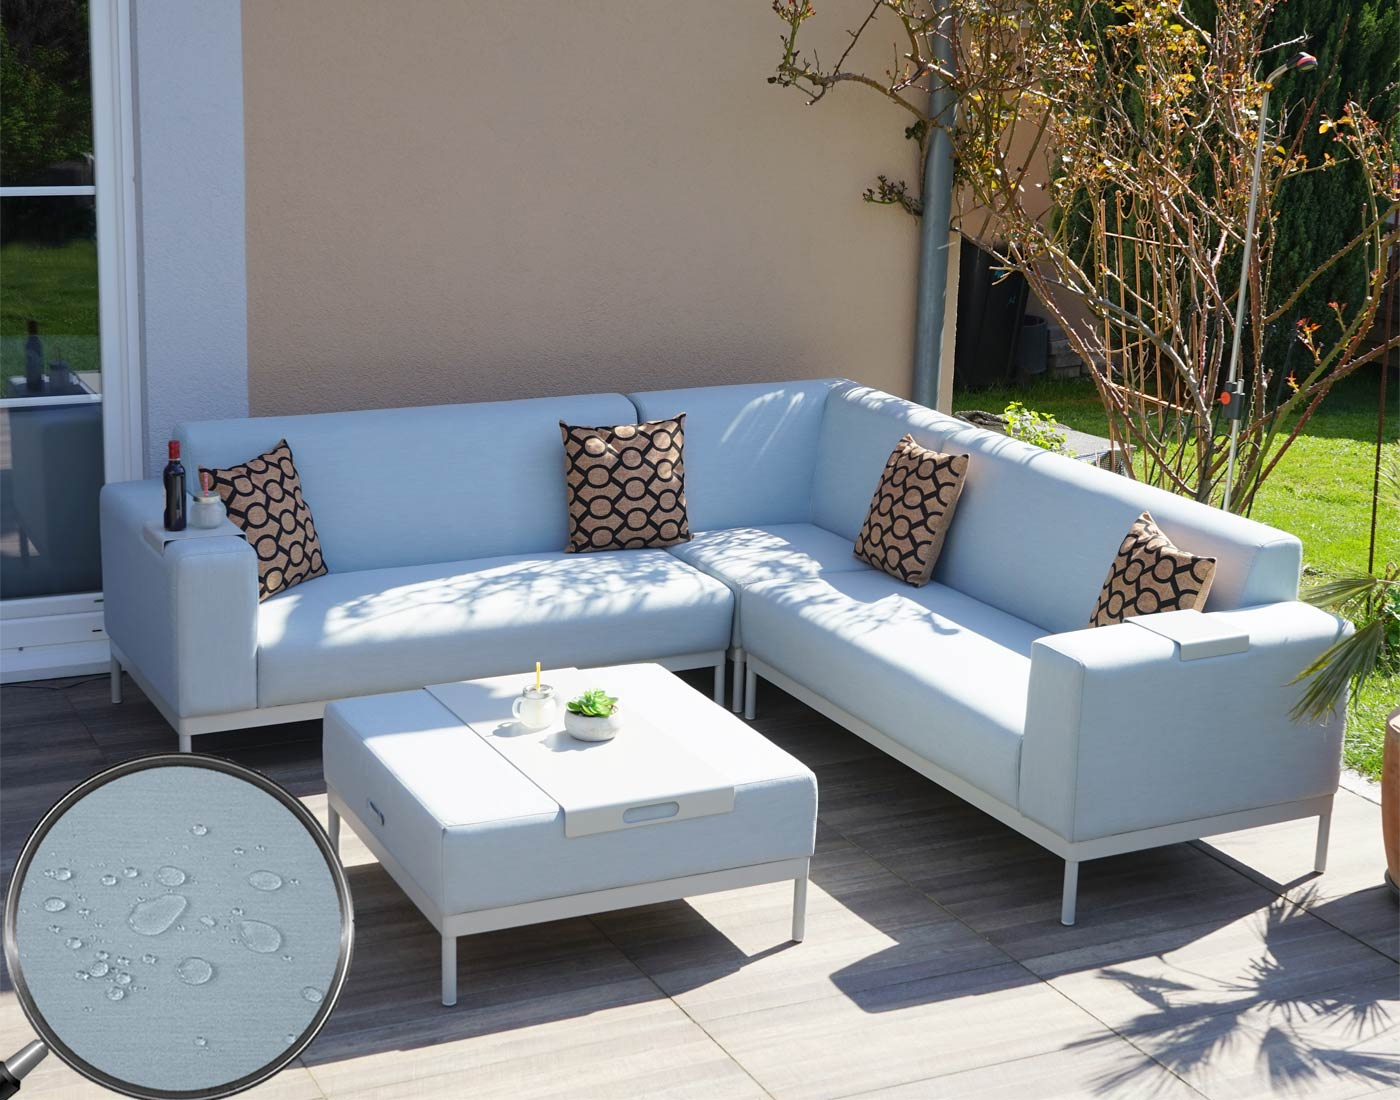 alu garten garnitur hwc c47 sofa outdoor textil blau mit ablage kissen braun. Black Bedroom Furniture Sets. Home Design Ideas